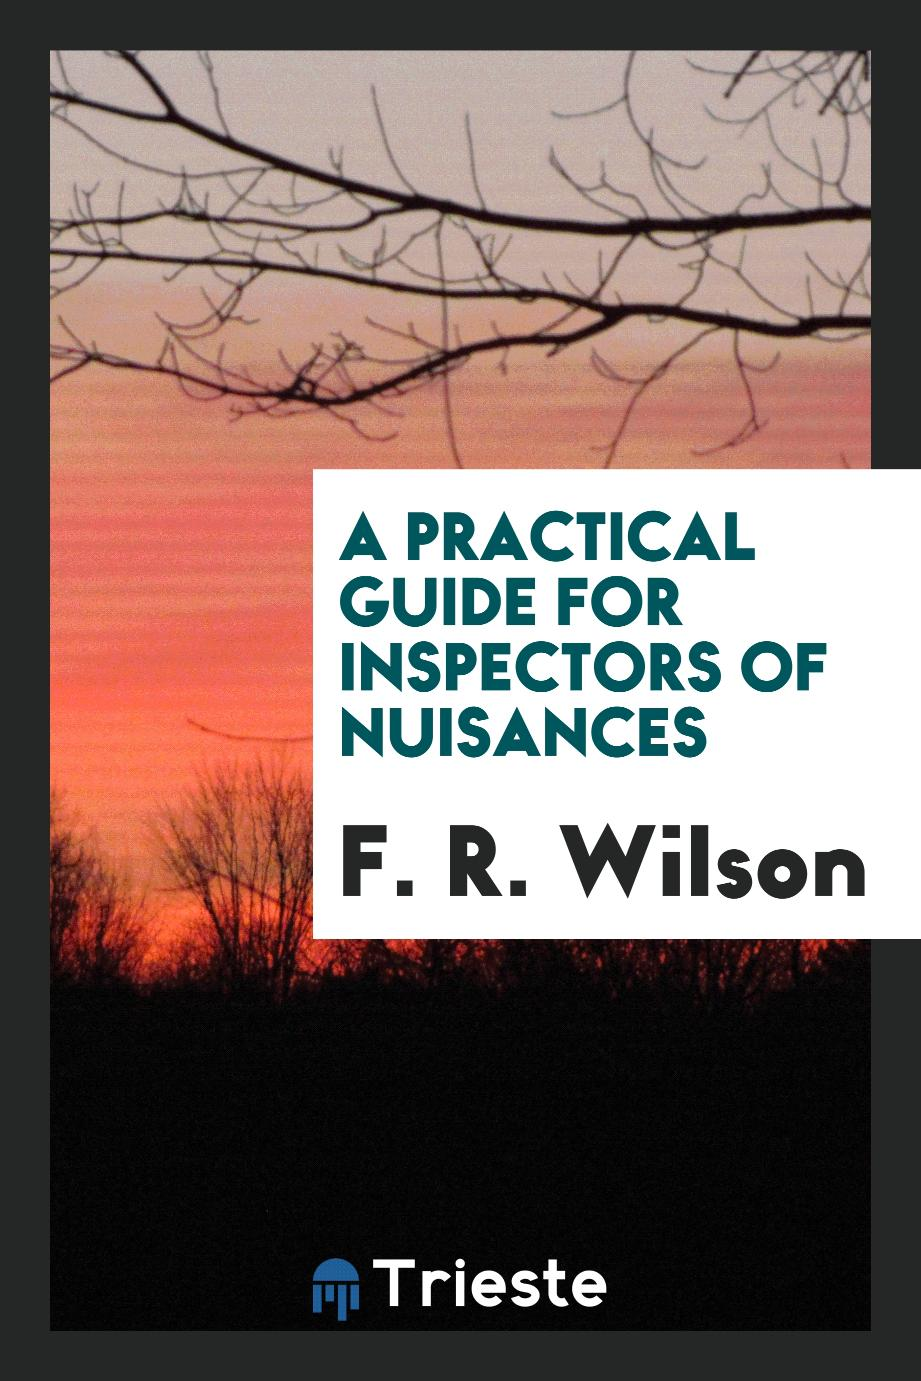 A Practical Guide for Inspectors of Nuisances